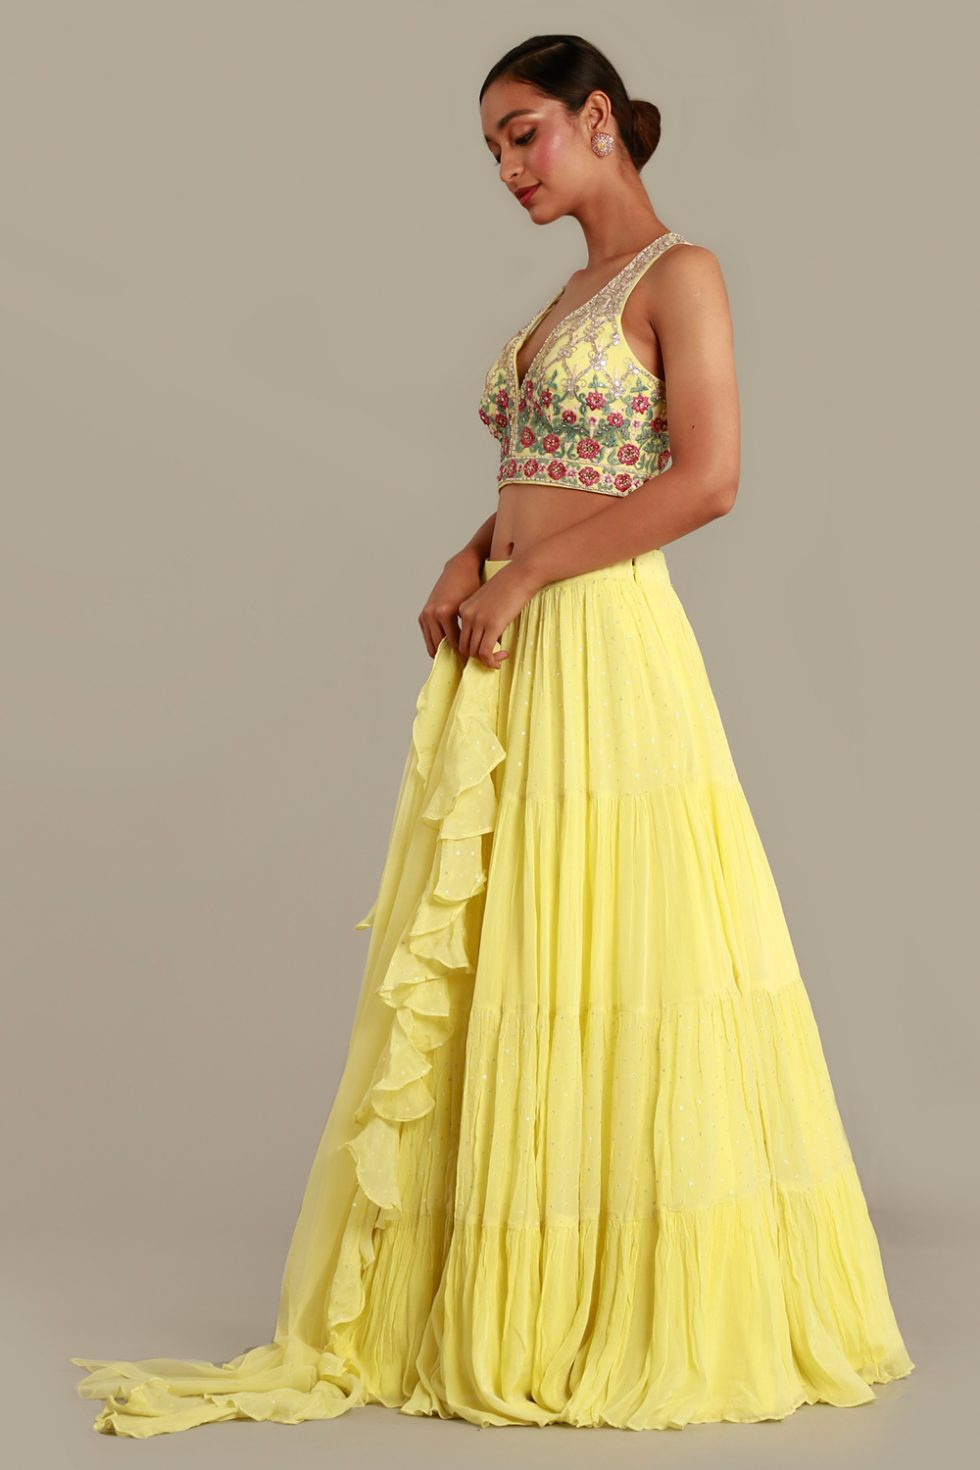 Lemon yellow lehenga set with tiered skirt, matching blouse with multi coloured embroidery, silver details and frill dupatta